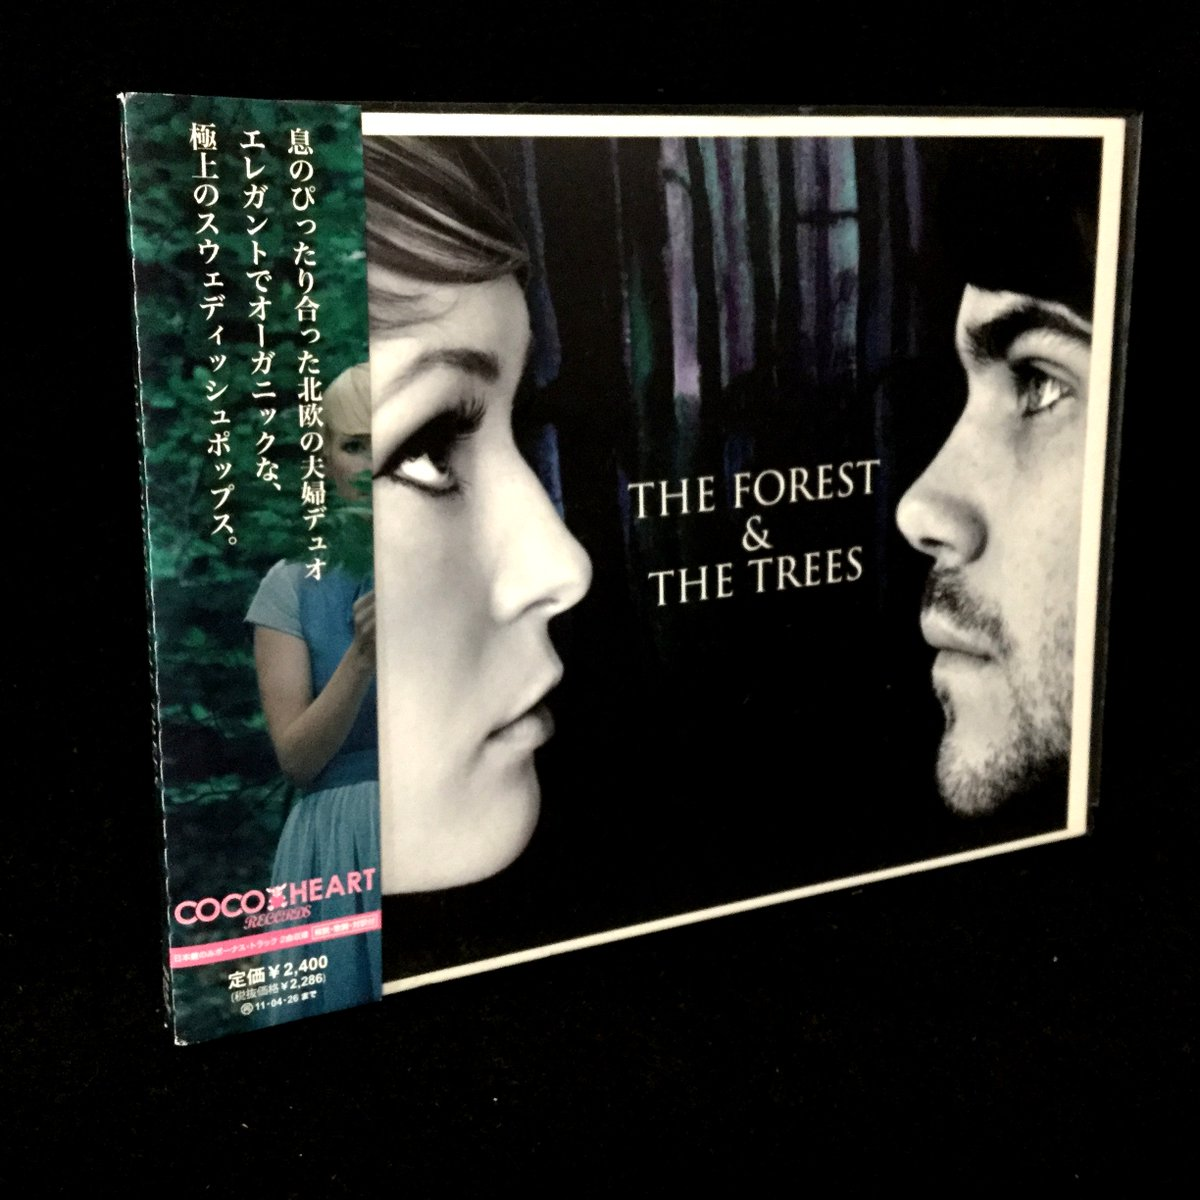 10th ANNIVERSARY!!!!!!!!!!!!!!!!!!!!!!!!!!!!!!!!!!! THE FOREST & THE TREES / The Forest & The Trees [October 27th, 2010 / 2010 discogs] https://t.co/2ii97vQ9fk